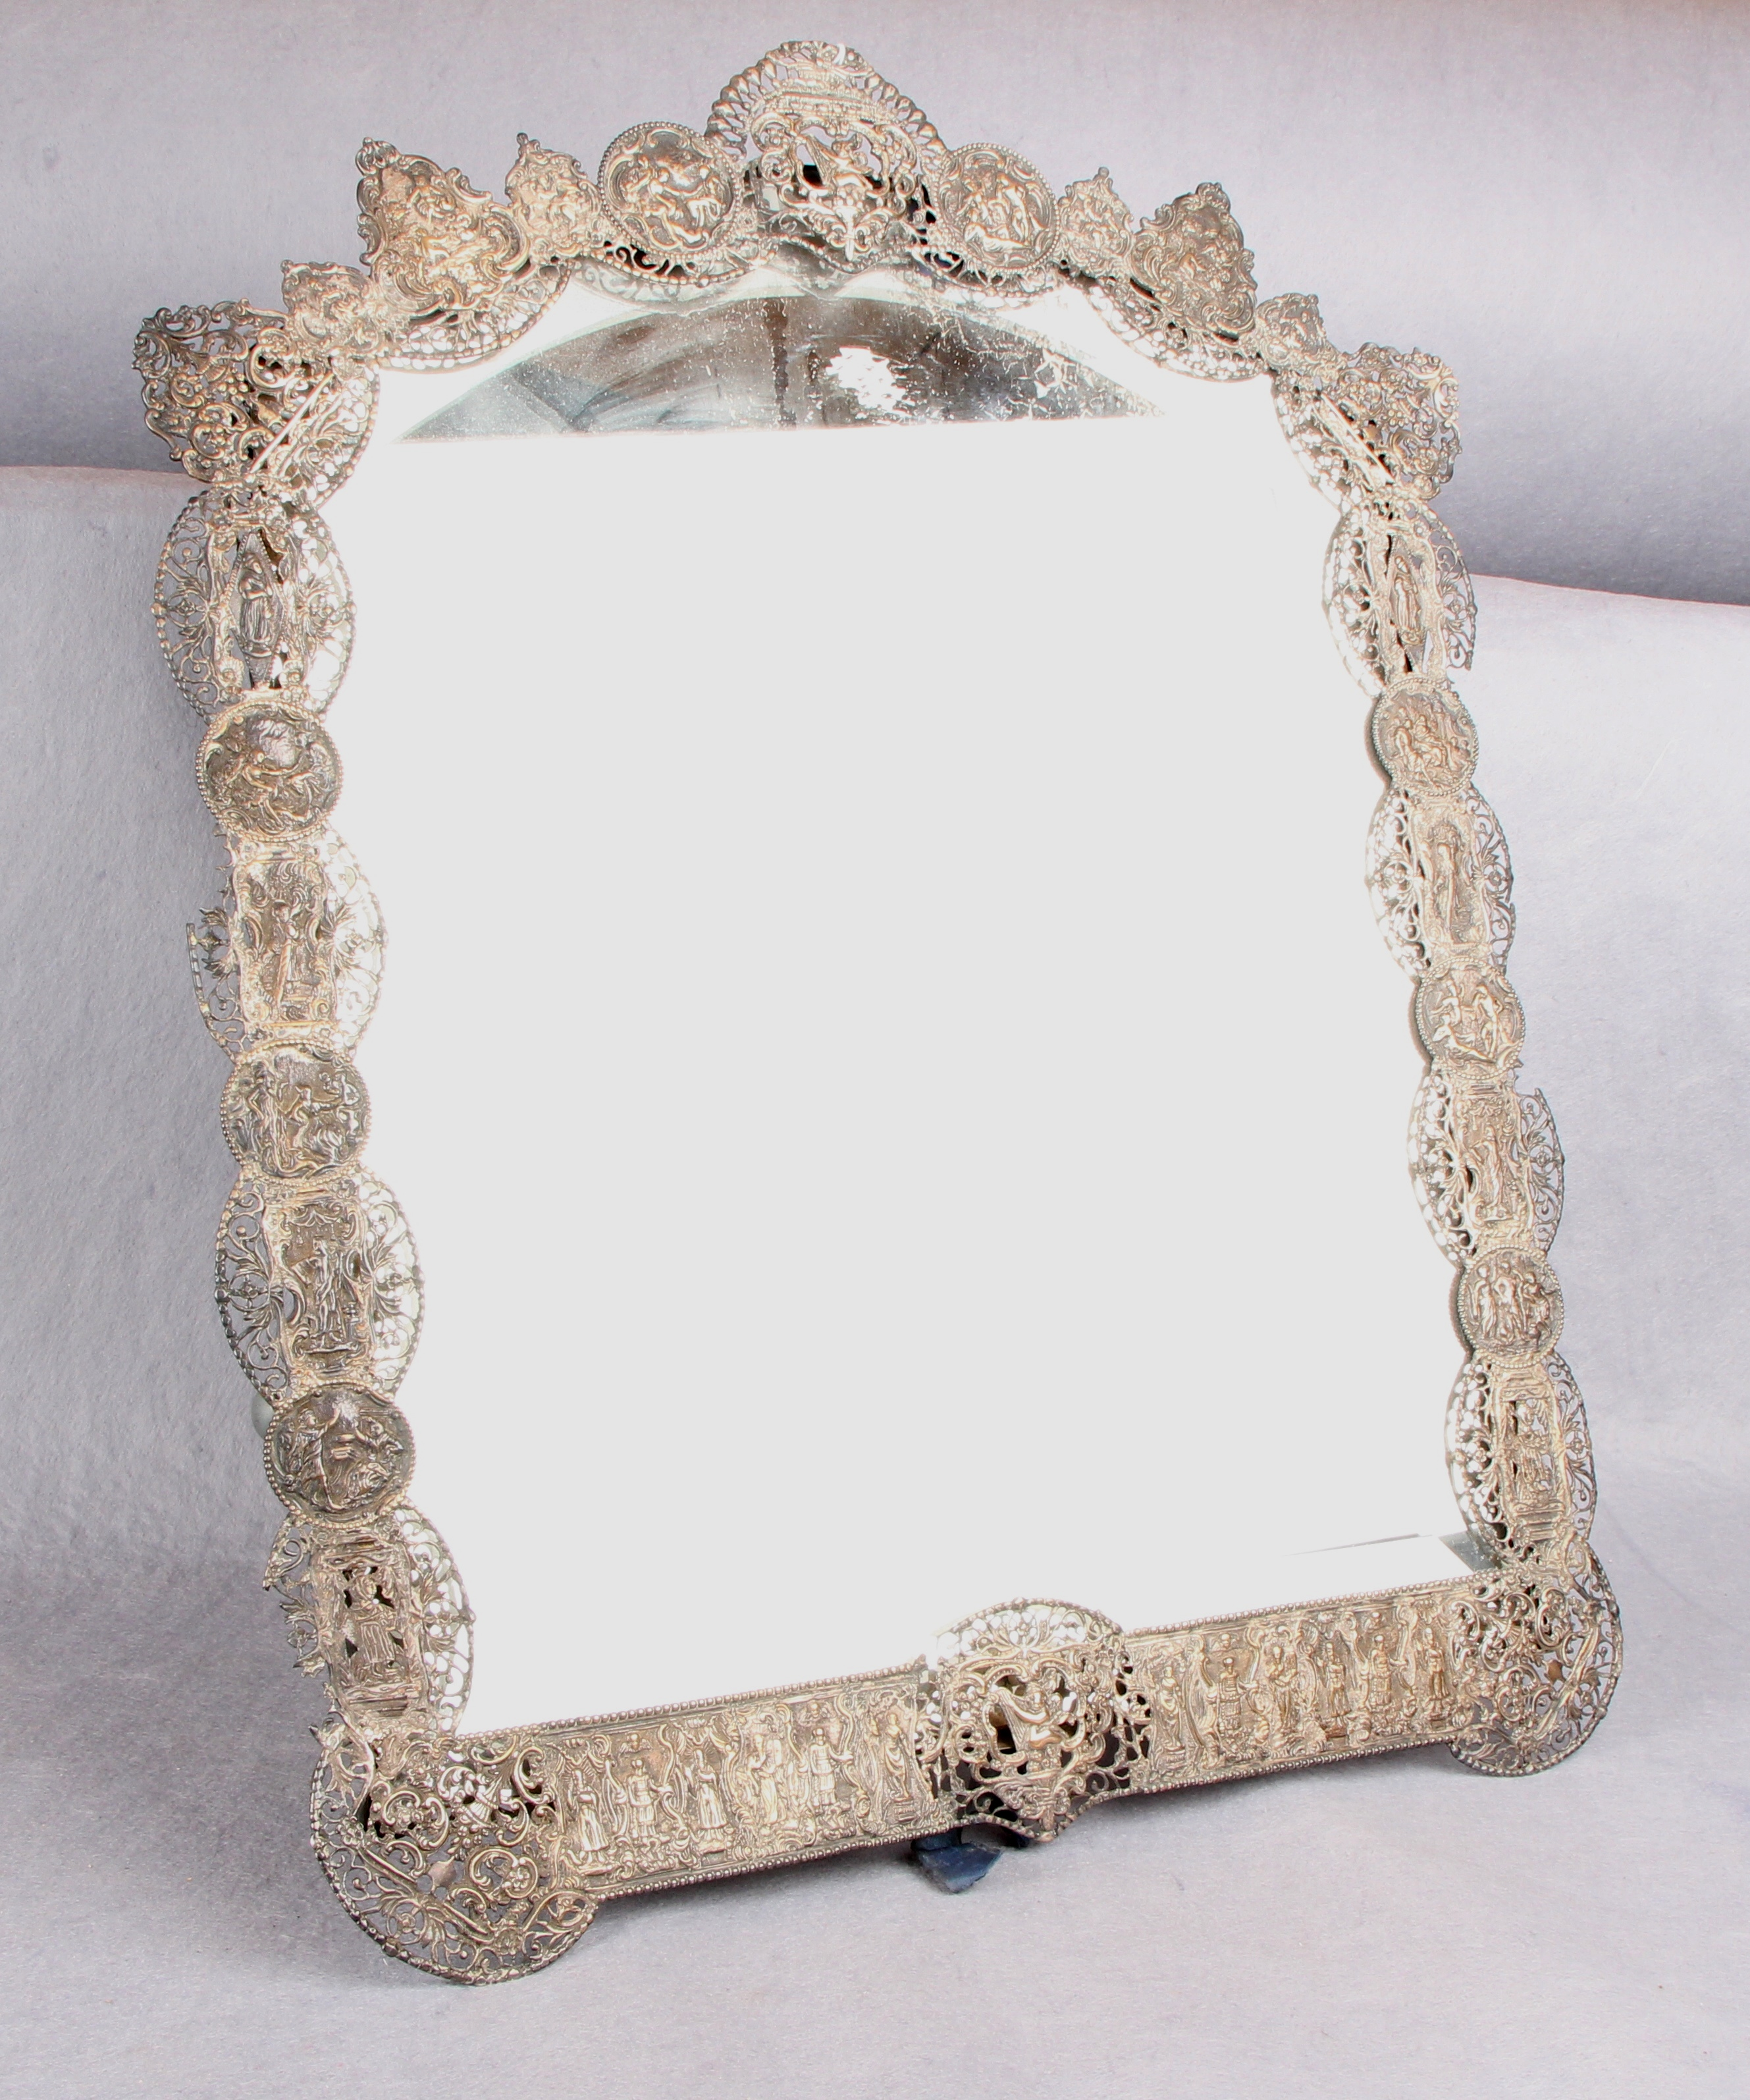 Lot 32 - A late 19th century dressing table mirror, the arched,